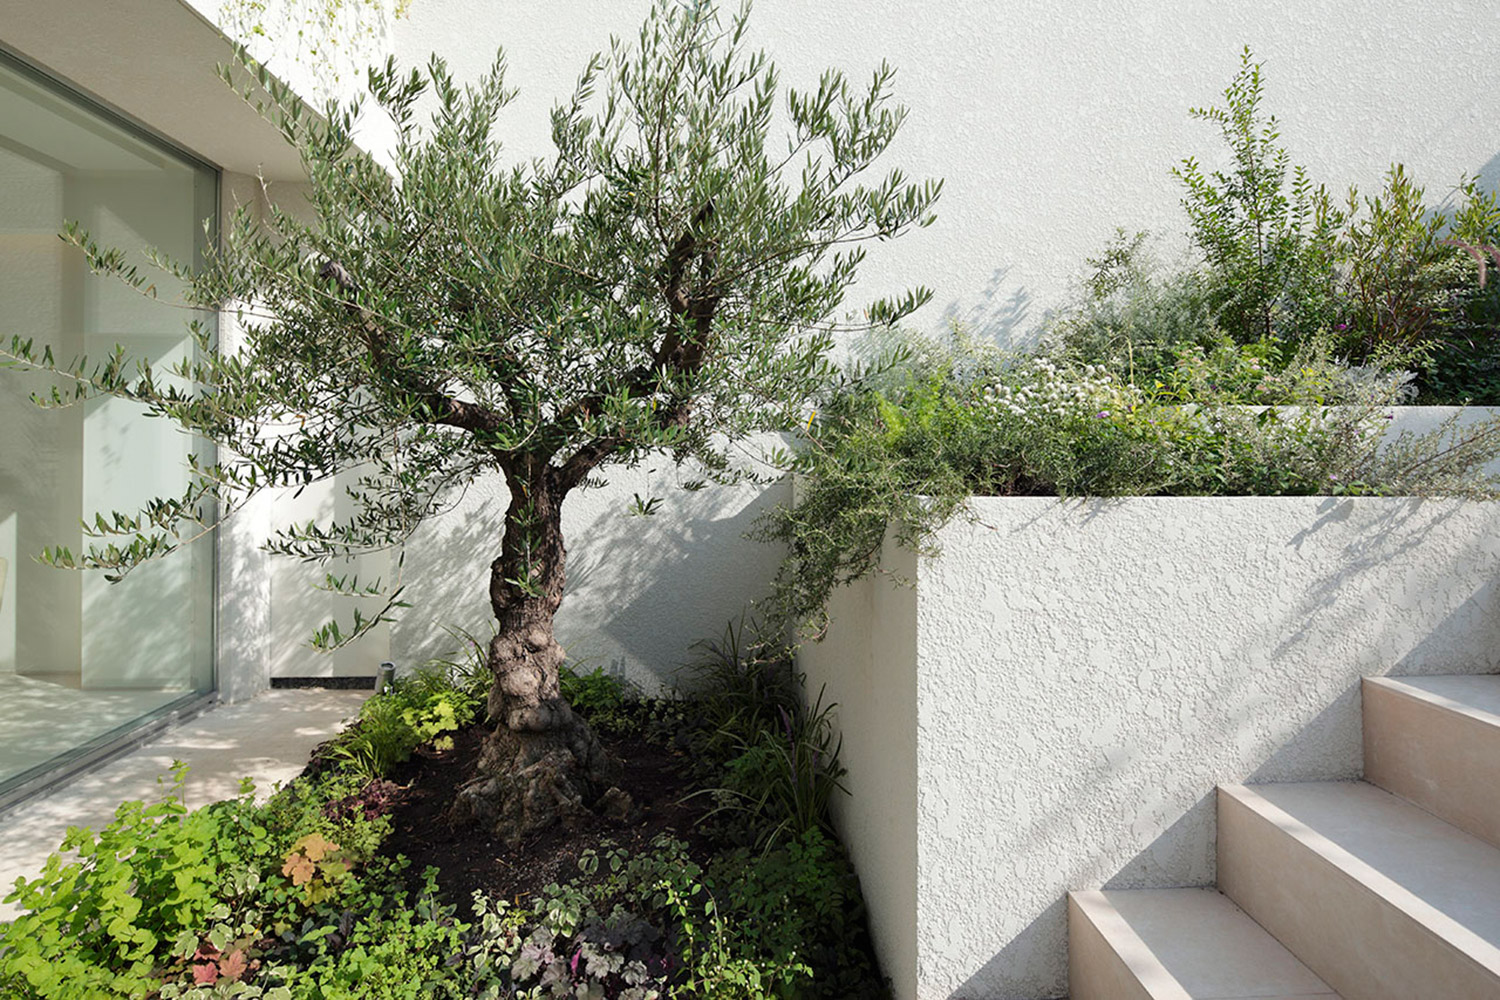 It was planted in the garden facing the living room. Olive tree over 100 years old. }